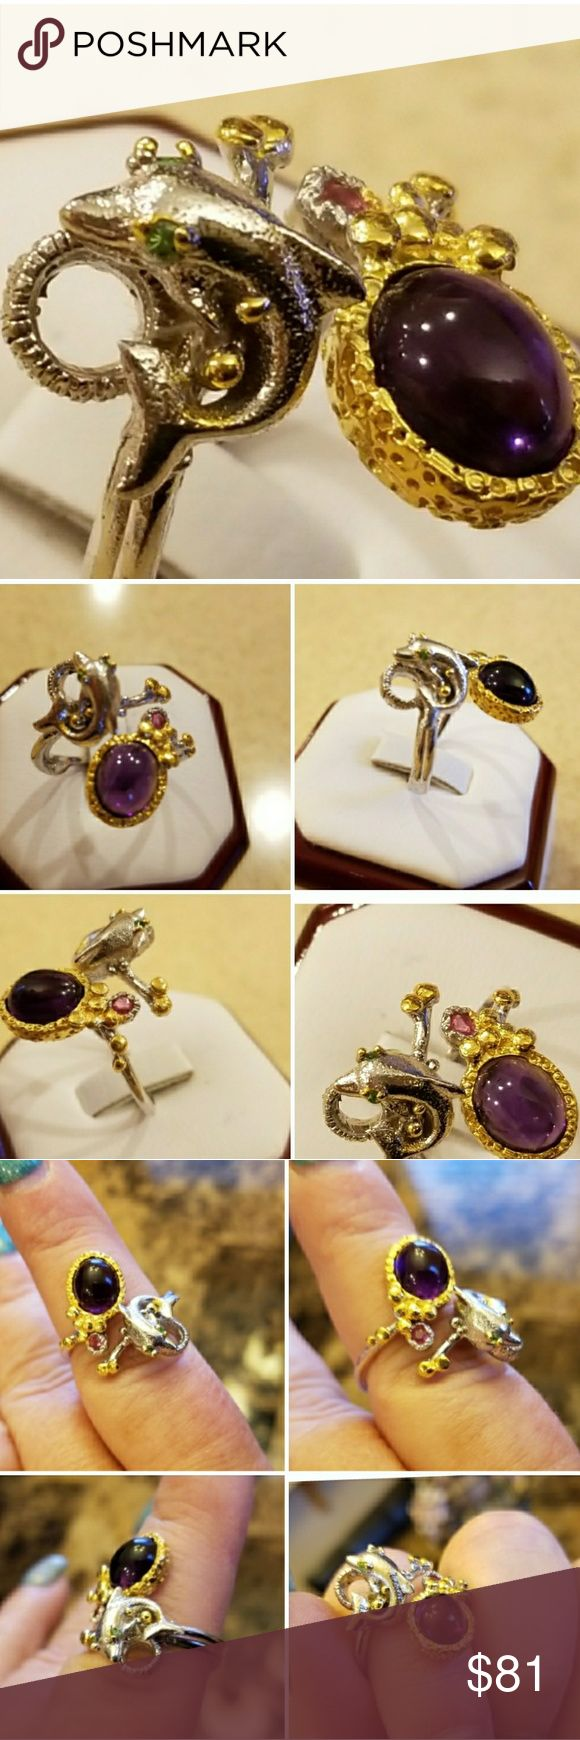 Genuine Amethyst Cabochon Ring Size 9-10 Another Special Designer Favorite!  One of a kind!! Slightly Adjustible.  Set in 925 stamped Solid Sterling Silver and highlighted in 14k Yellow Gold Highlighting the art form.  Notice the Ruby and the fish with tsavorite eyes! Please see all pictures for more detail and measurement. Brand New. Never Worn. WHOLESALE Prices Always!!! Jewelry Rings